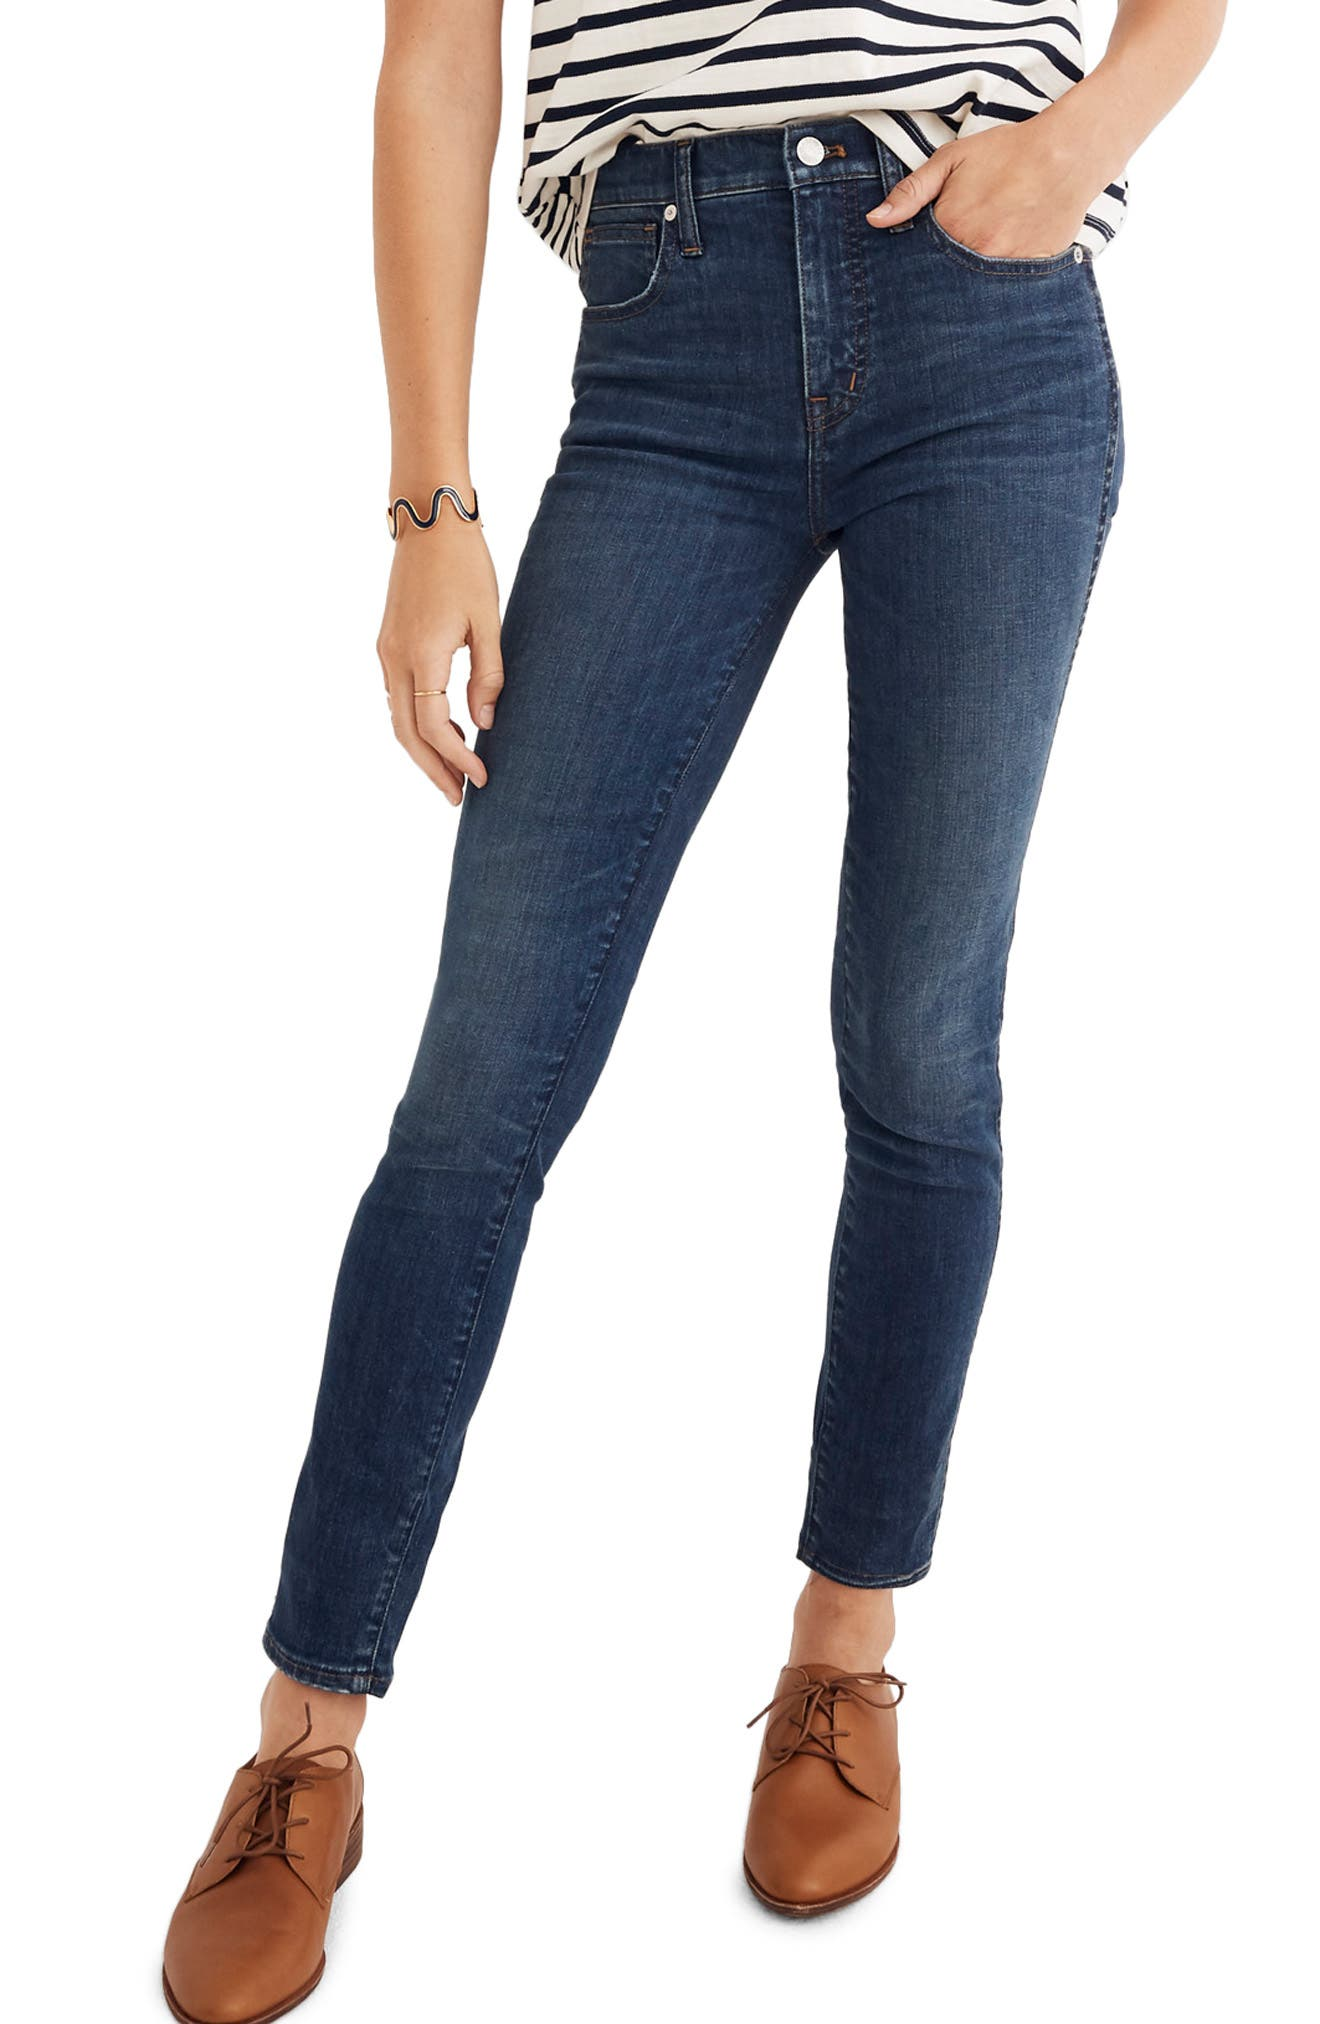 Eco Collection High Rise Skinny Jeans,                         Main,                         color, ELINOR